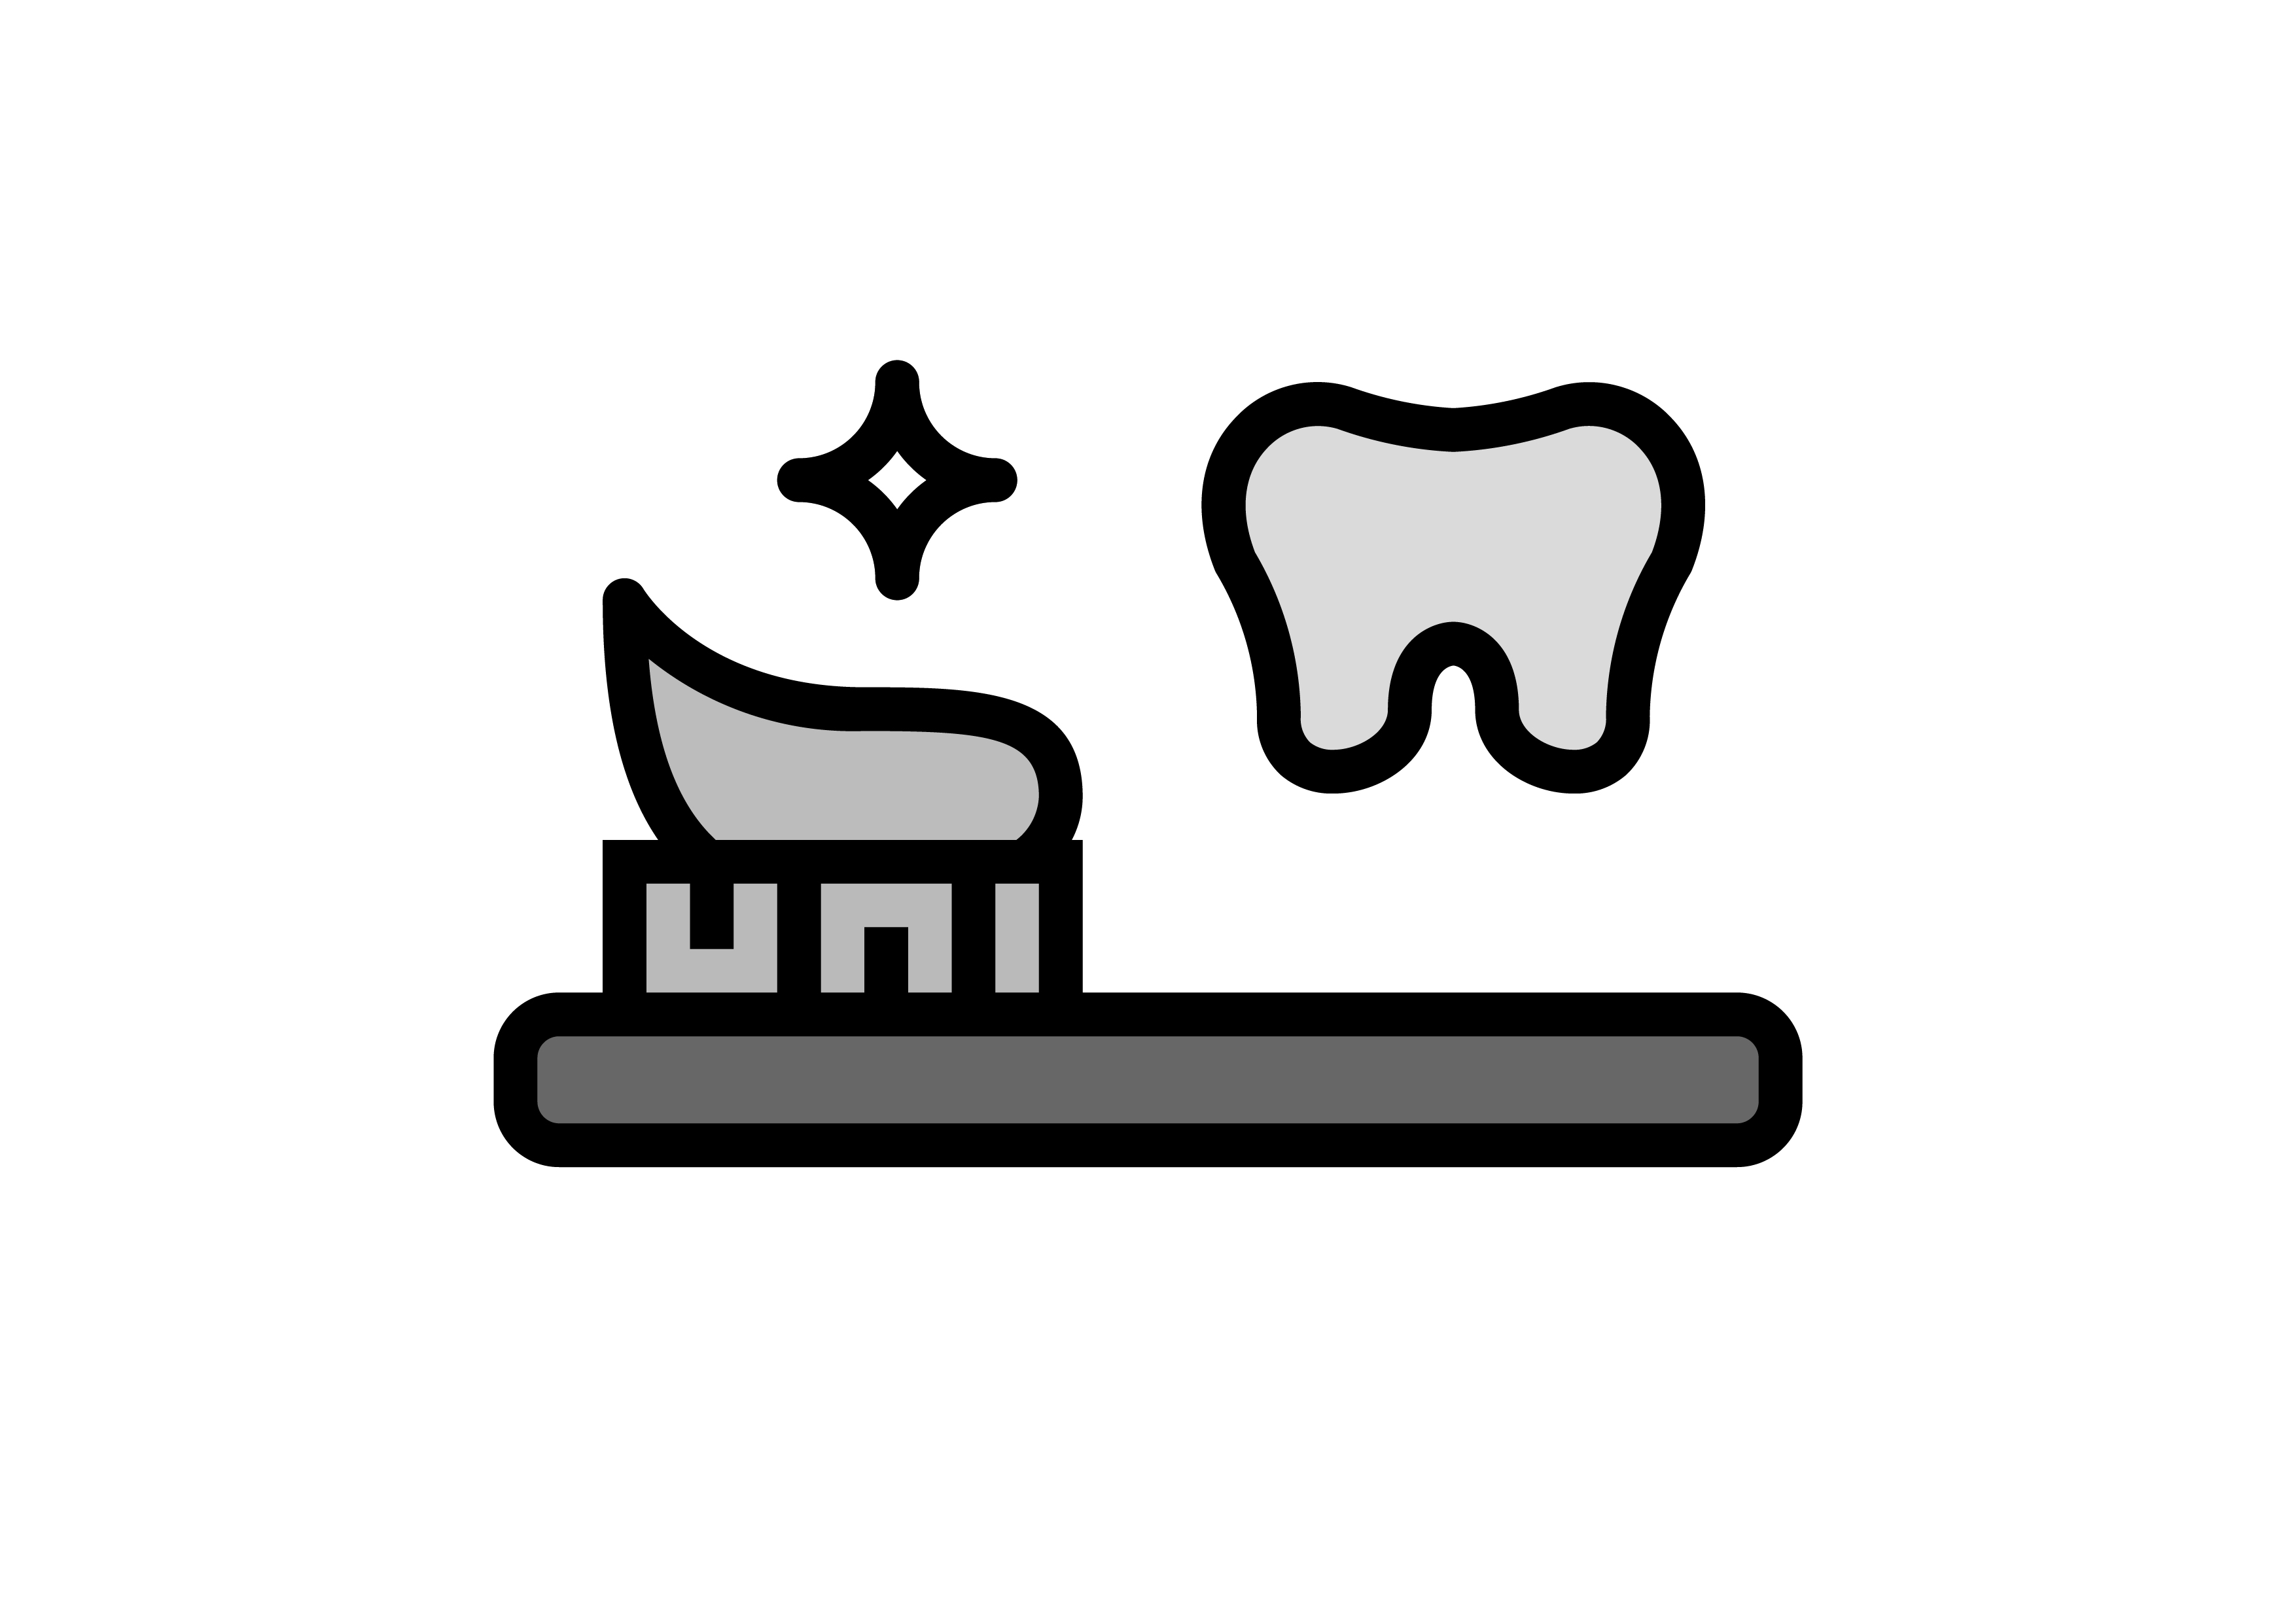 Download Free Beauty Dental Care Graphic By Cool Coolpkm3 Creative Fabrica for Cricut Explore, Silhouette and other cutting machines.